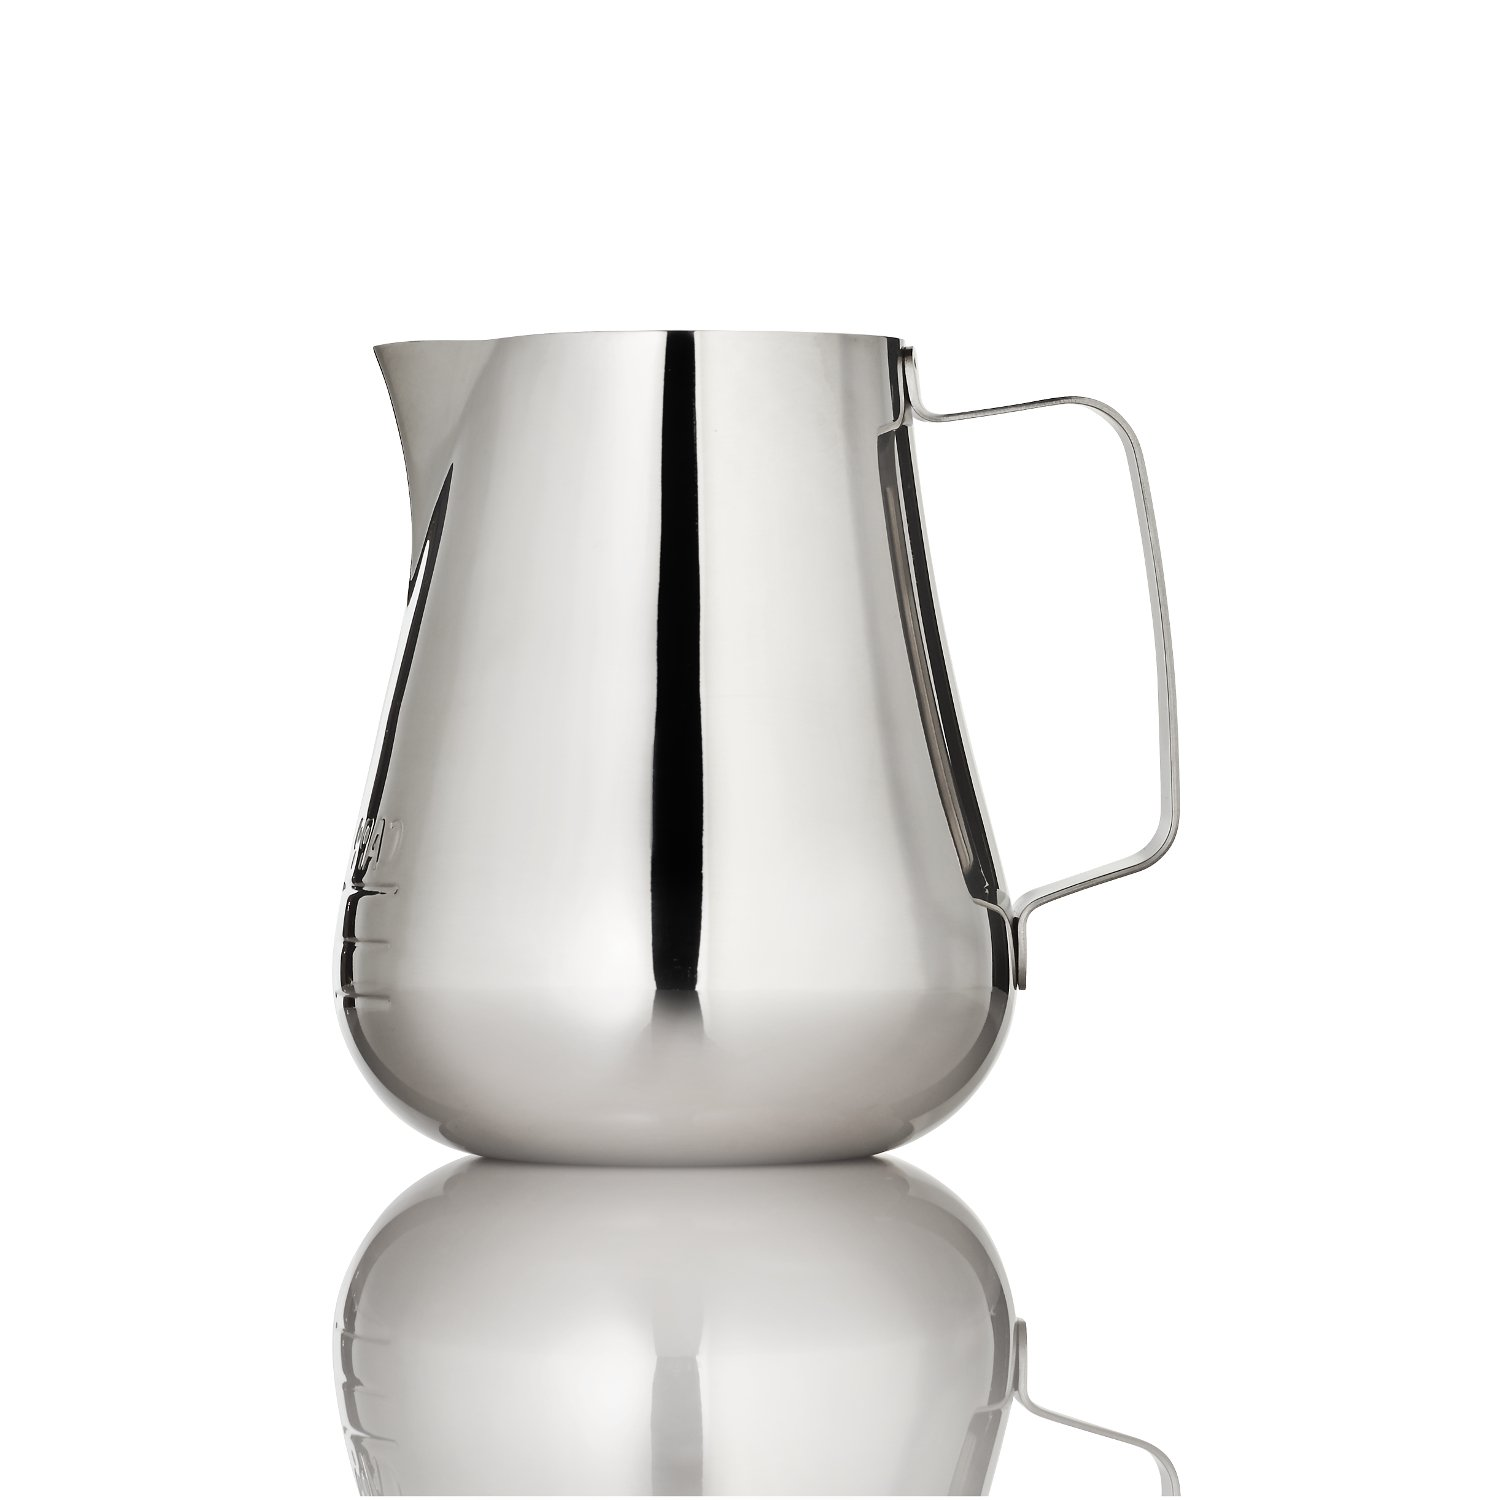 Espro Toroid2 25 oz Stainless Steel Steaming Pitcher by Espro